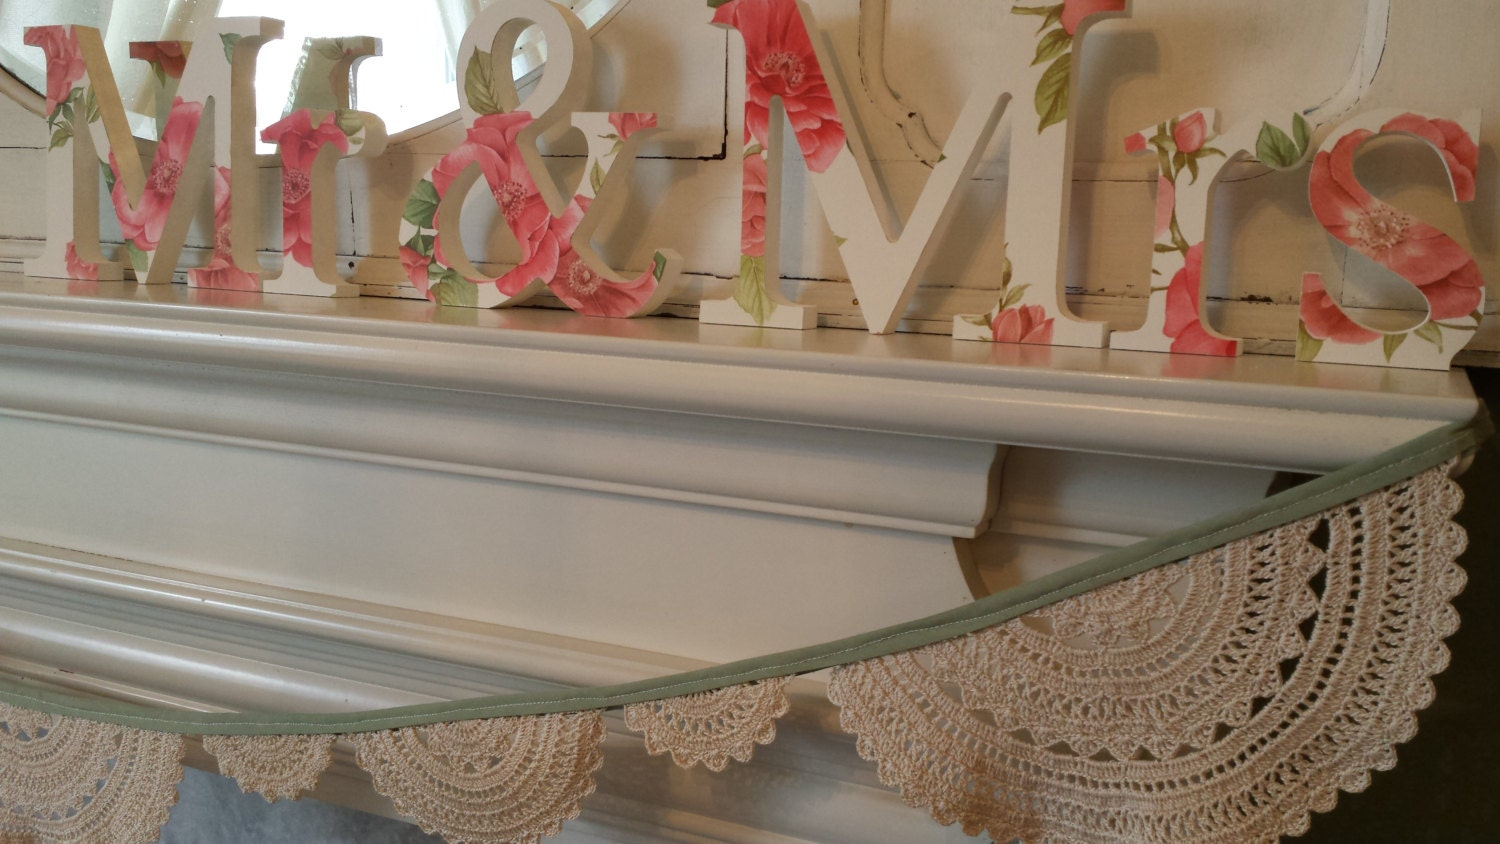 Elegant old rose design in shades of pink Mr and Mrs free standing wooden wedding decoupaged letters. 15 cm high